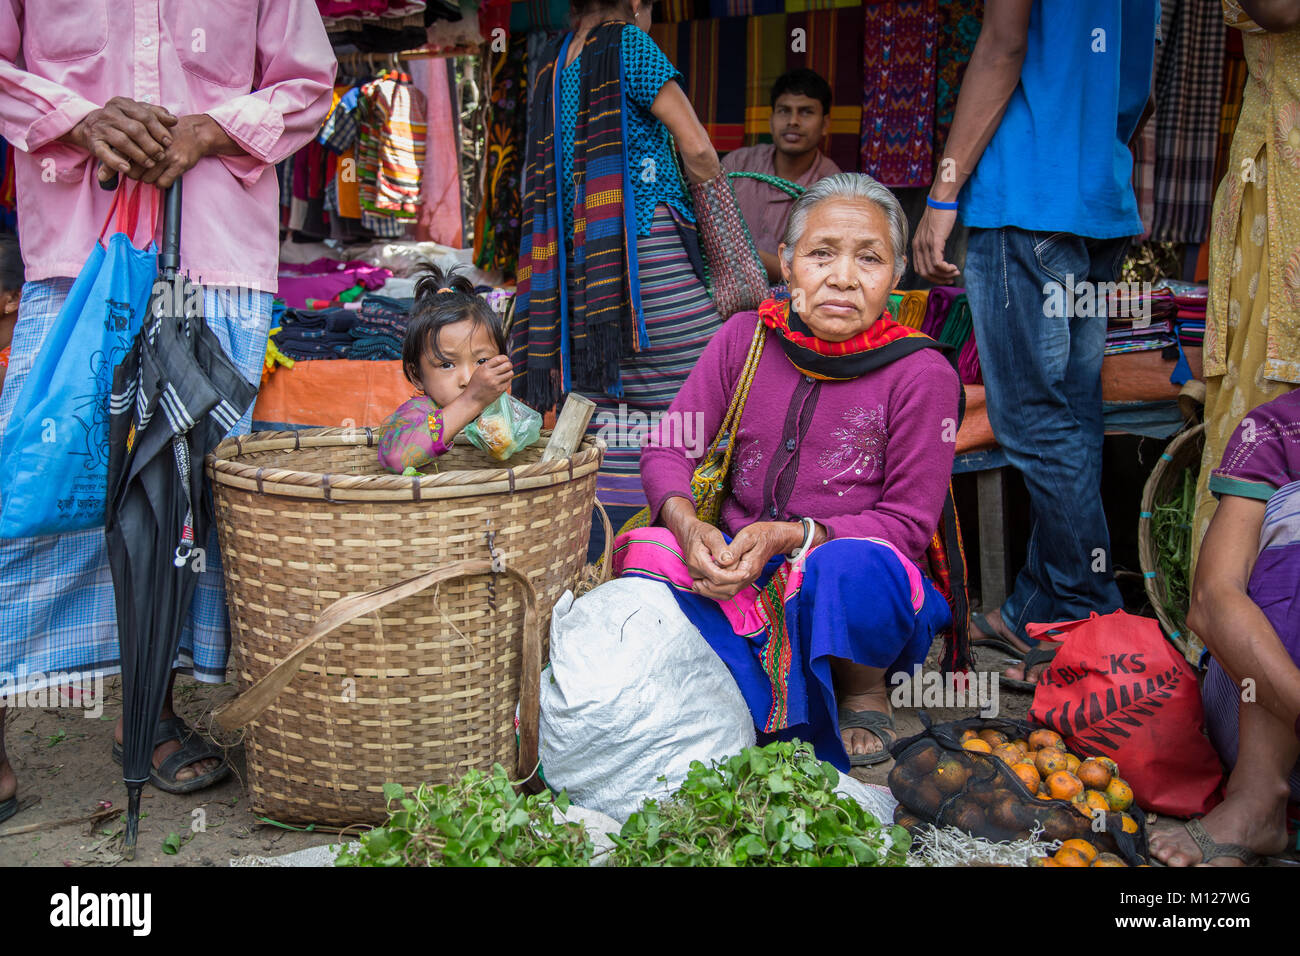 bangladeshi lady at a market selling vegetables - Stock Image